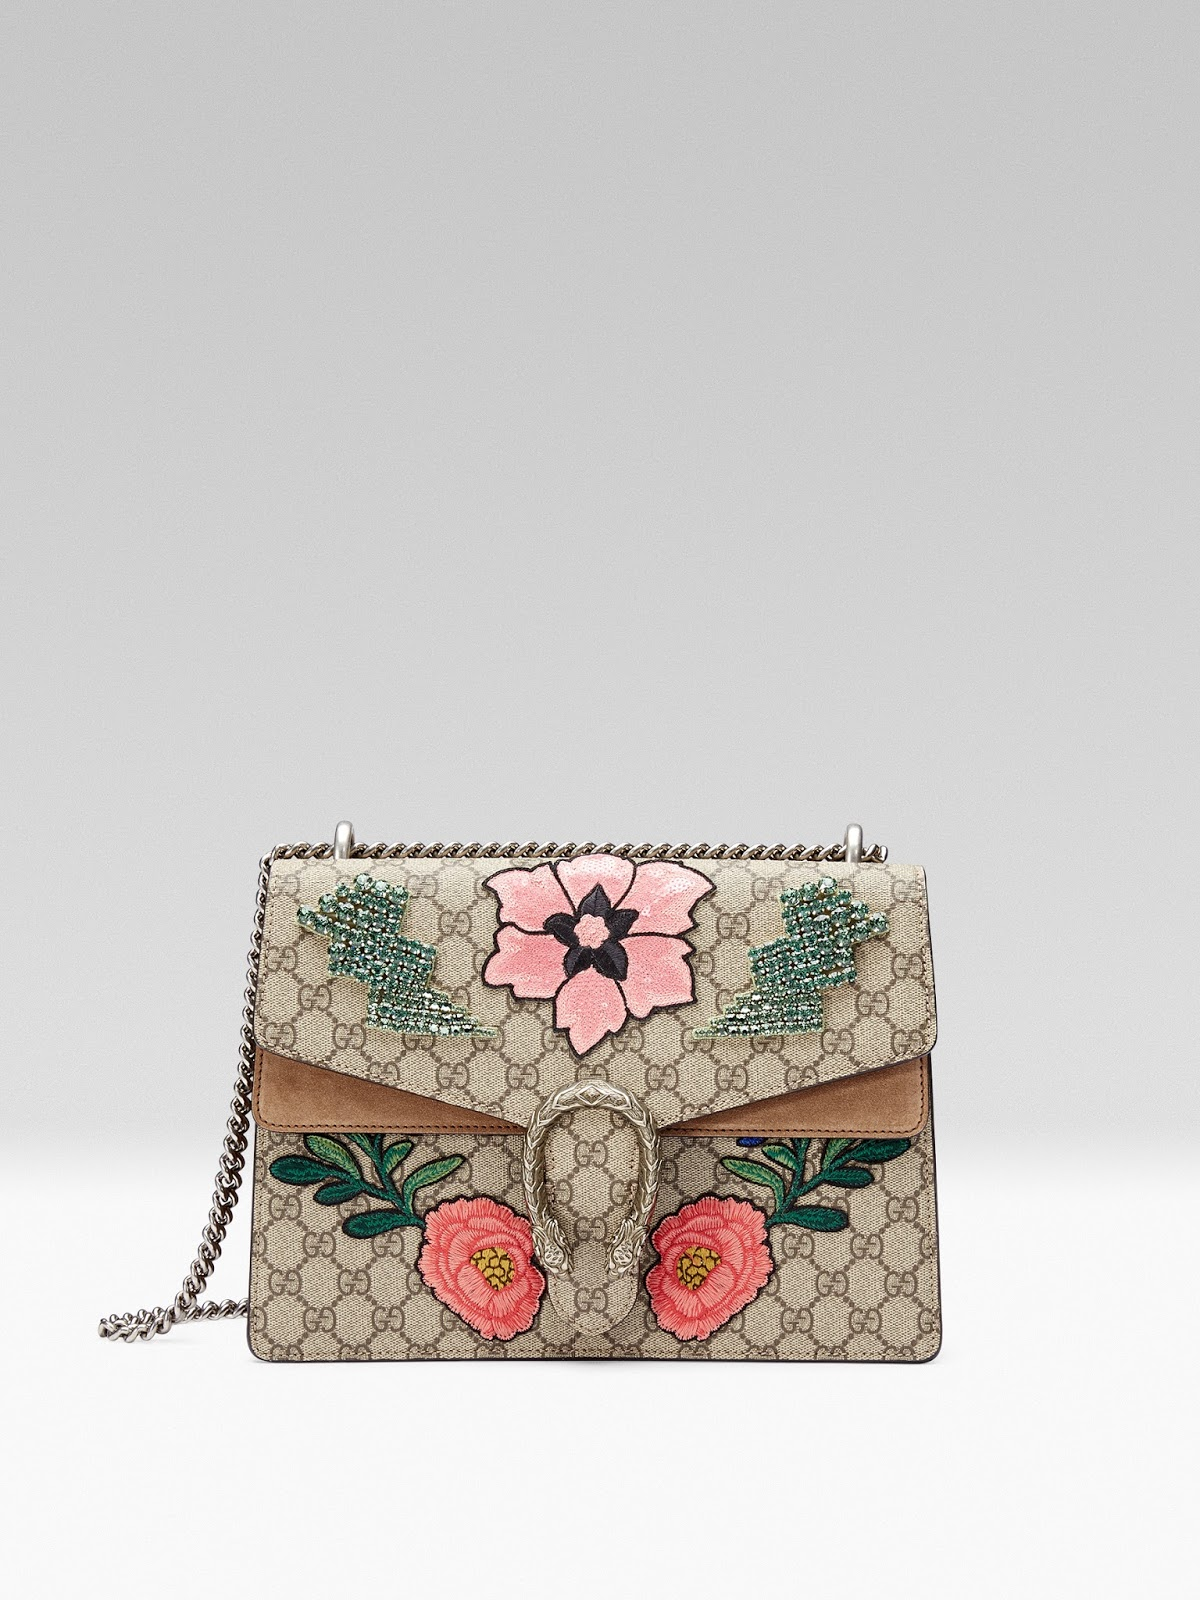 Gucci's Limited Edition Dionysus City Bags